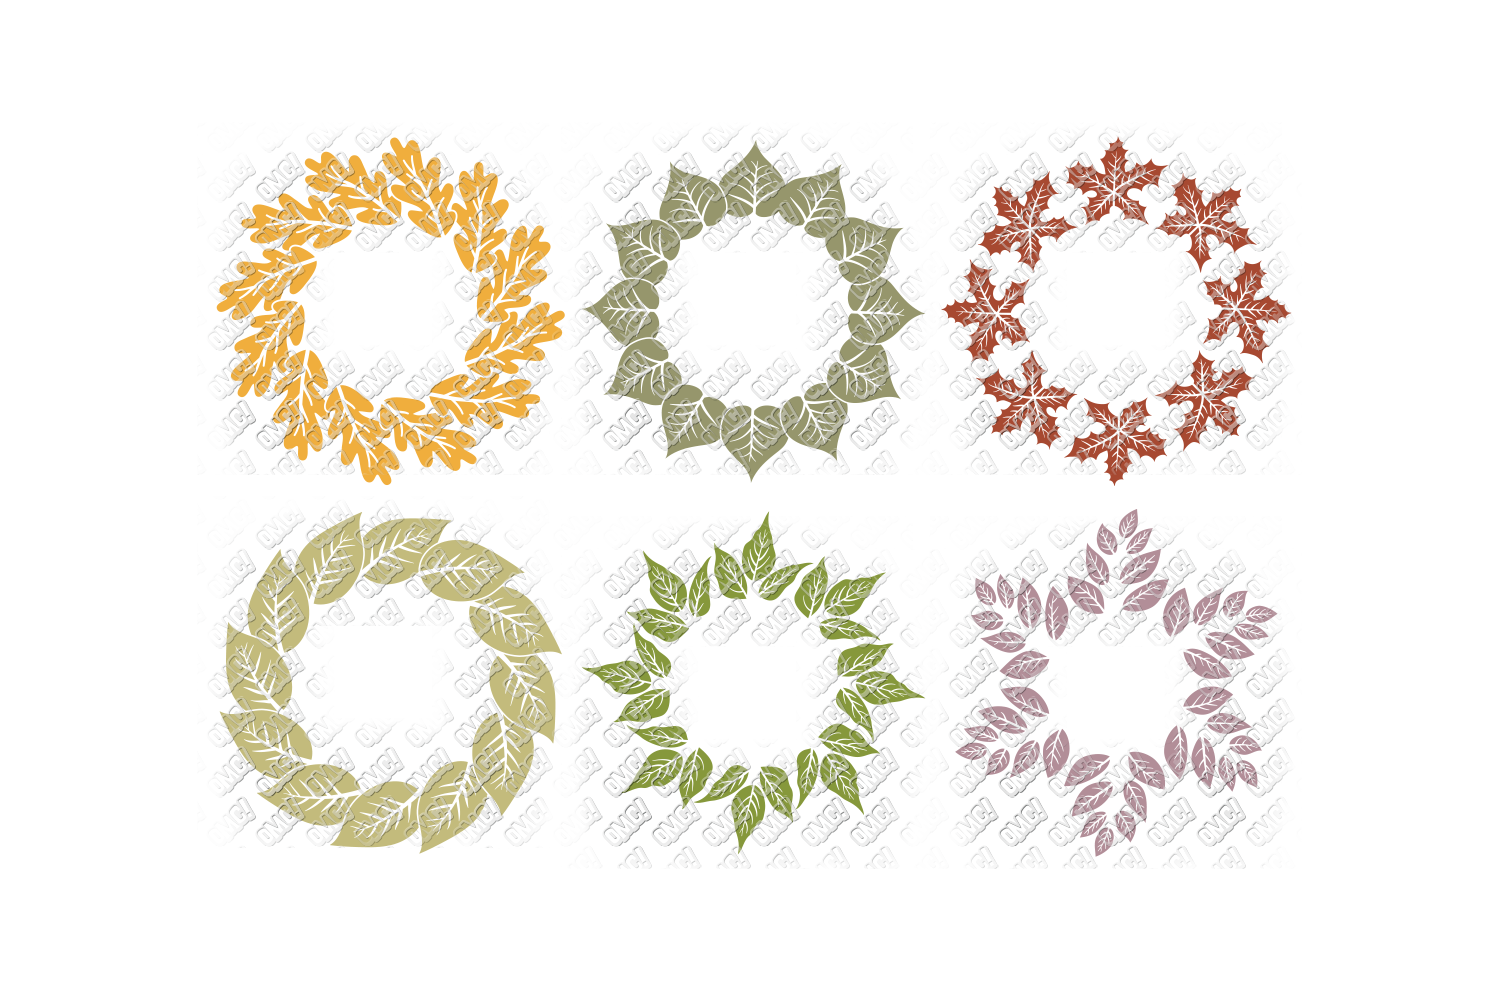 Leaf SVG Fall Leaves Autumn in SVG, DXF, PNG, EPS, JPEG example image 5